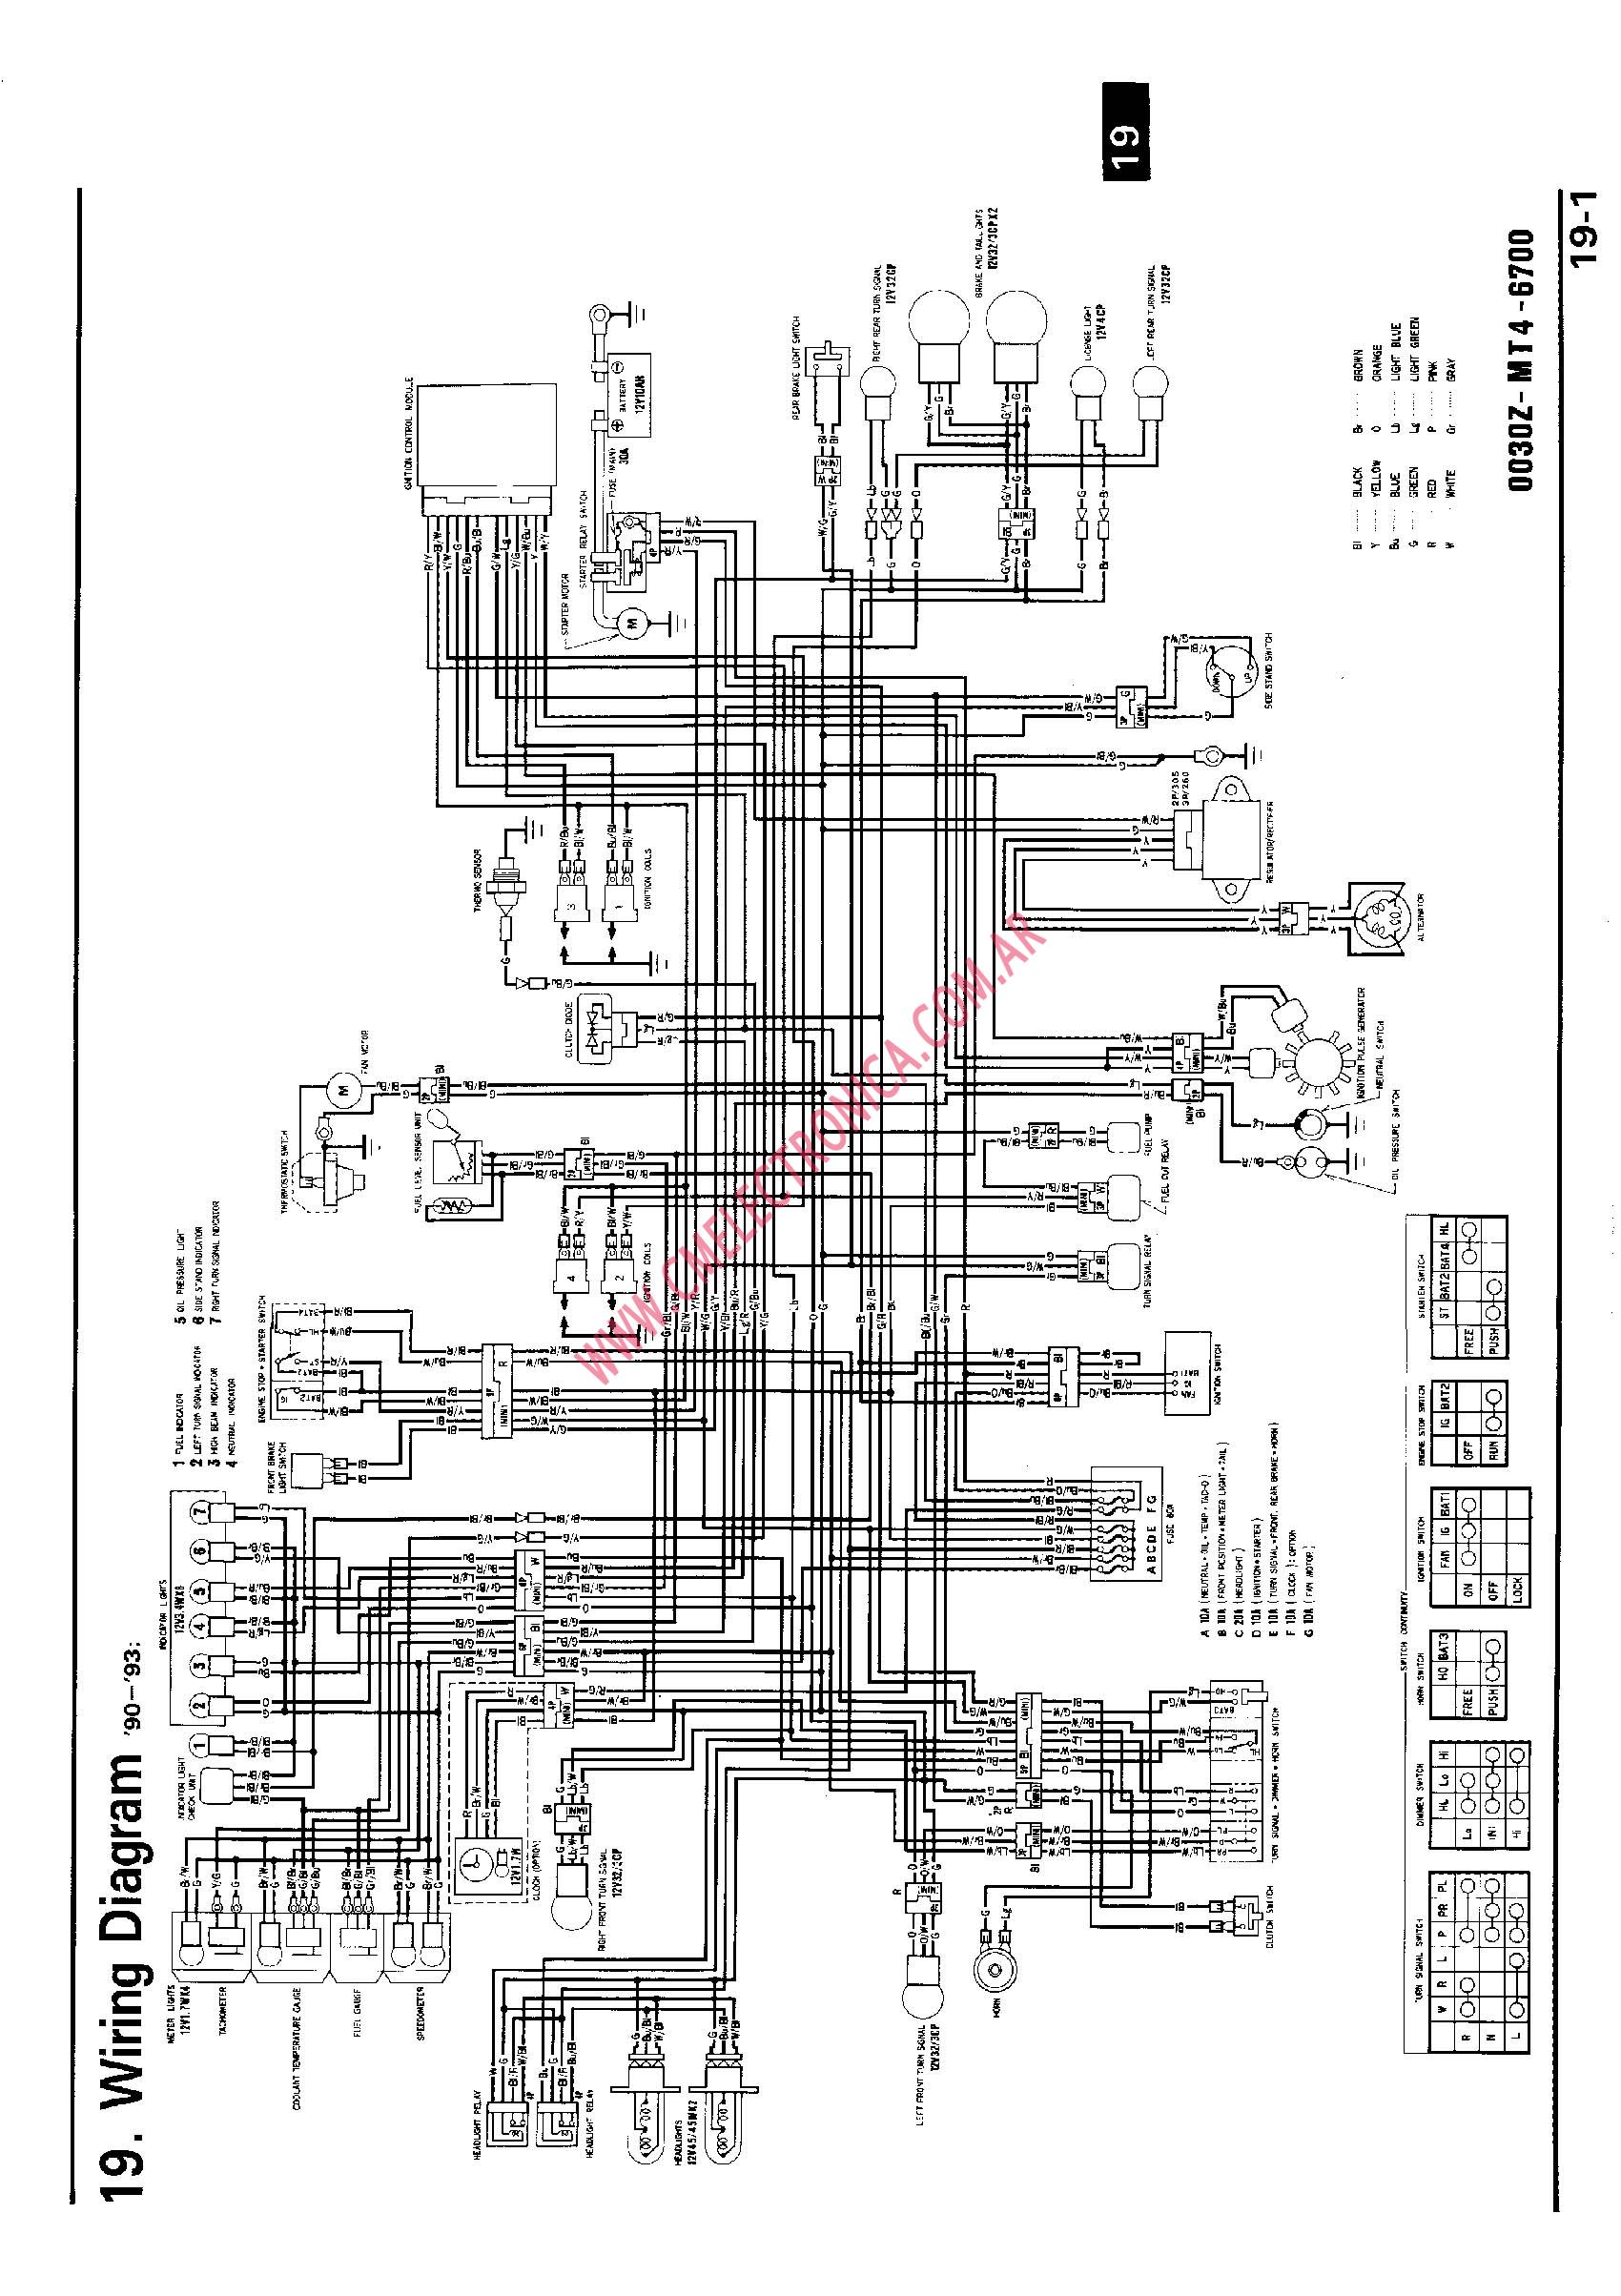 [SCHEMATICS_48EU]  Honda Cbr 600 F4 Wiring Diagram - Fuse Diagram For 2002 Ford 250 Diesel for Wiring  Diagram Schematics | Honda Cbr Wiring Diagram |  | Wiring Diagram Schematics